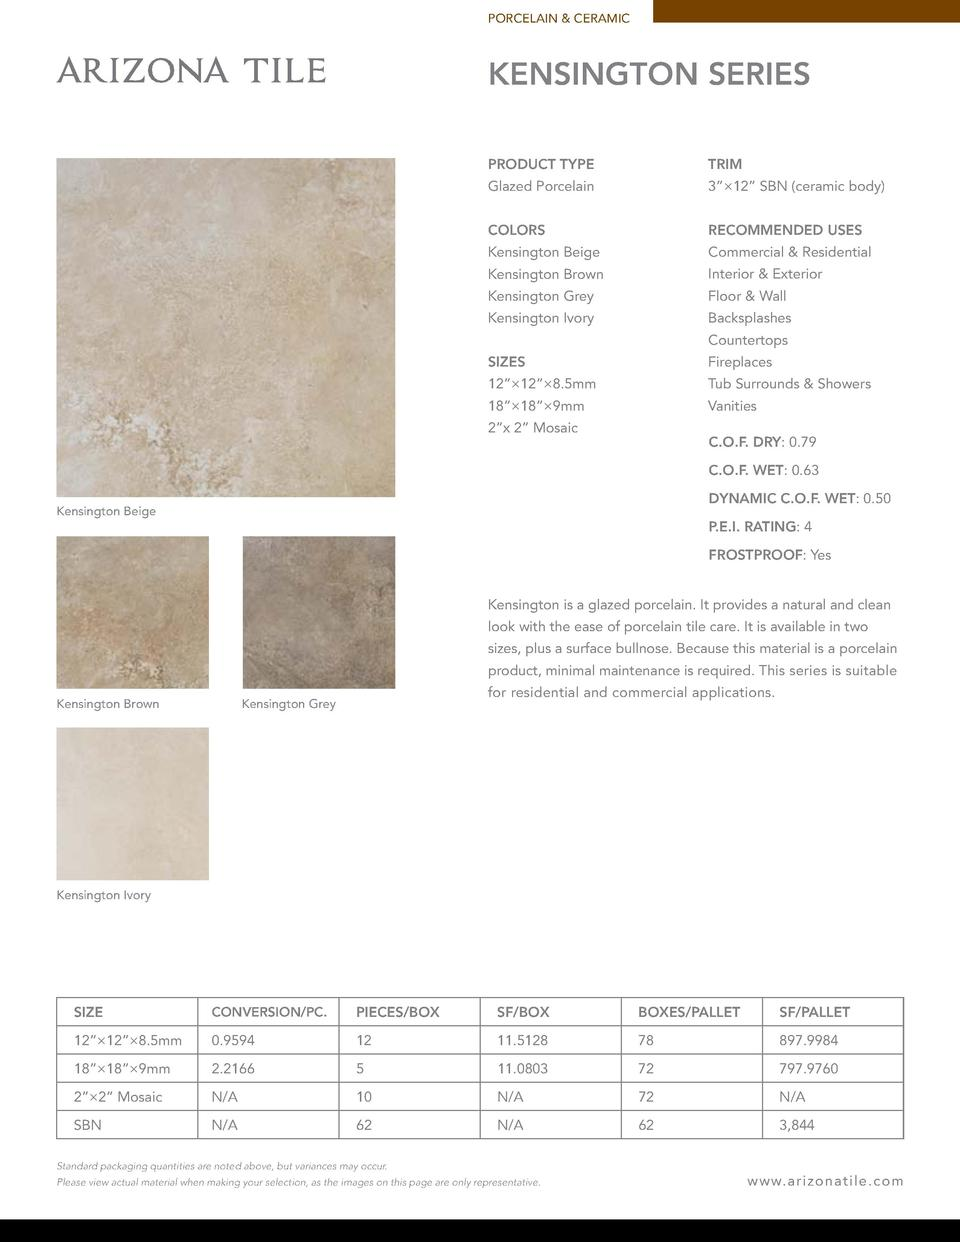 PORCELAIN   CERAMIC  KENSINGTON SERIES PRODUCT TYPE  TRIM  Glazed Porcelain  3     12    SBN  ceramic body   COLORS  RECOM...